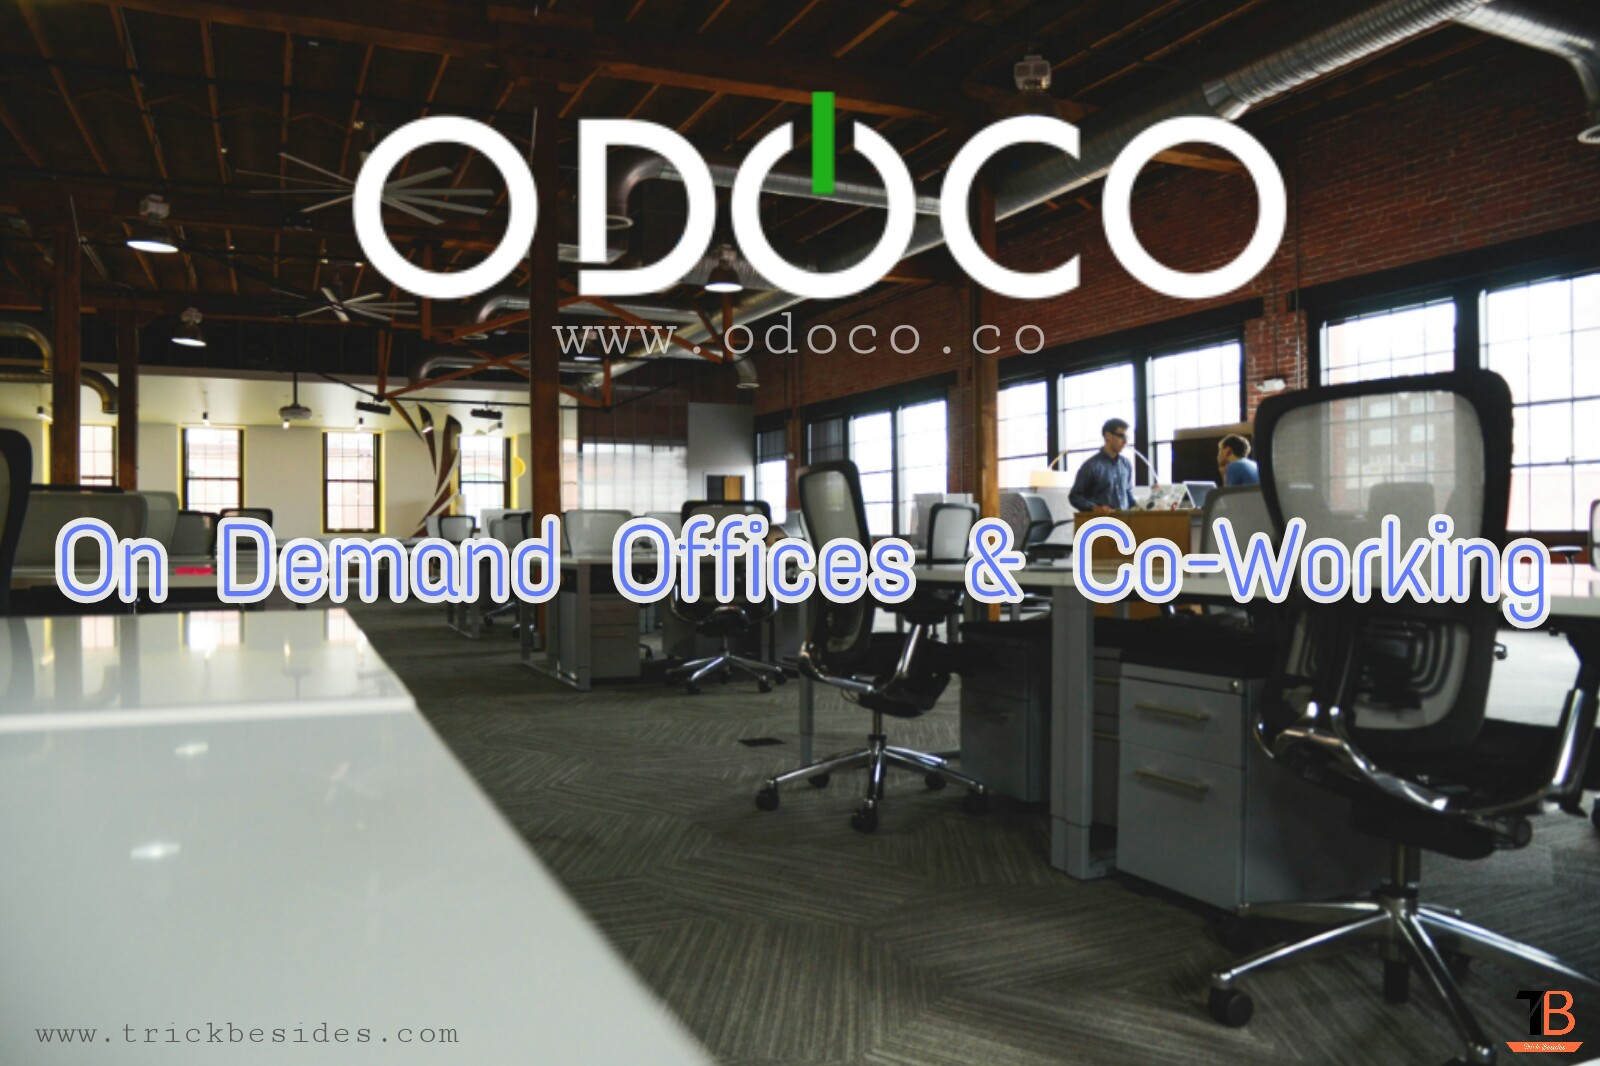 Co-working Office Space Solution by ODOCO